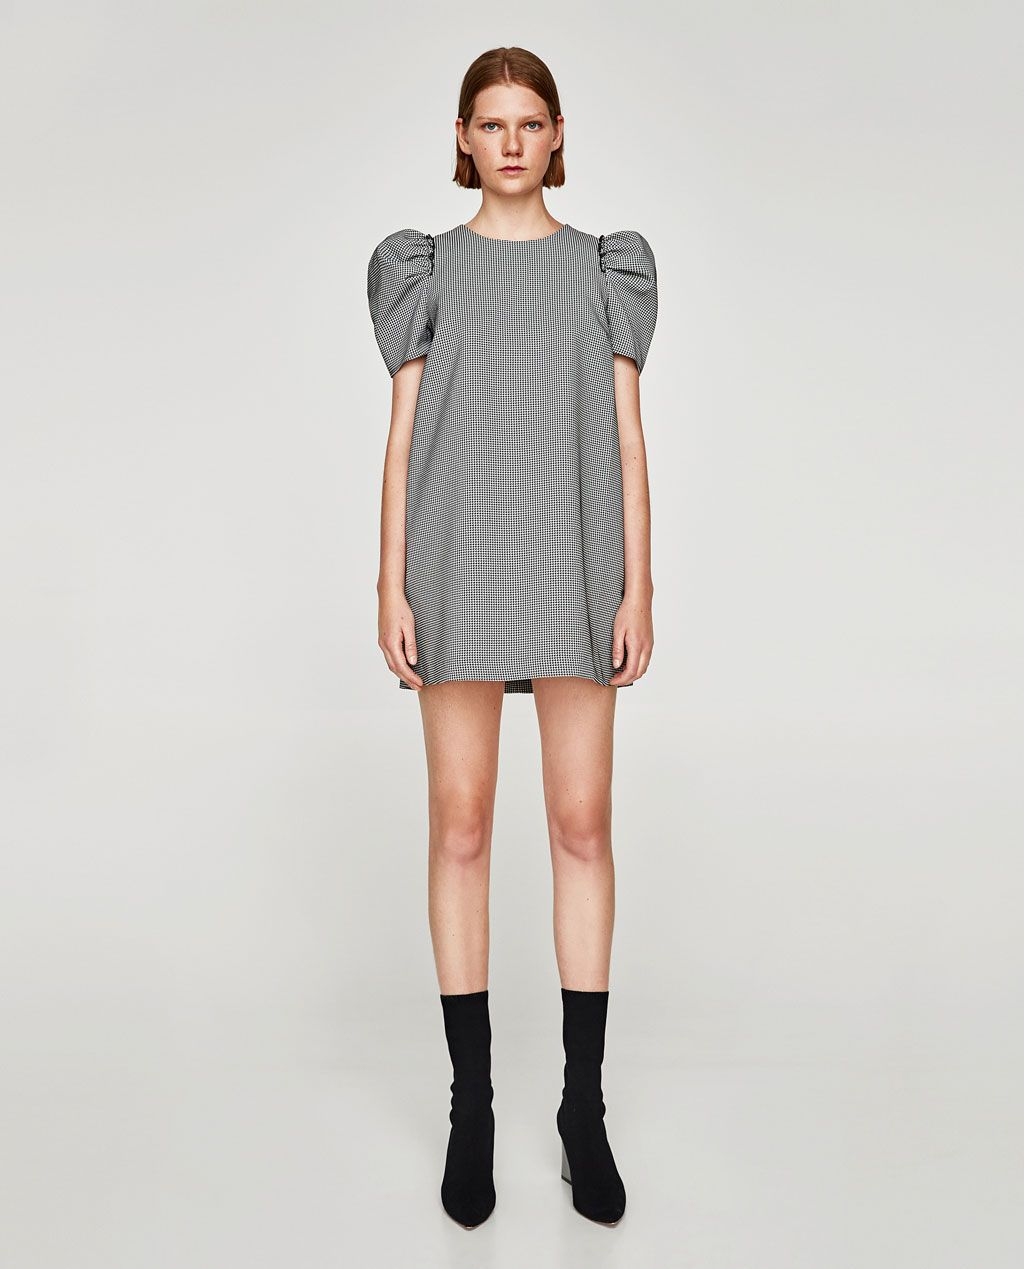 ZARA - WOMAN - FULL SLEEVE DRESS  Winter mode outfits, Overall